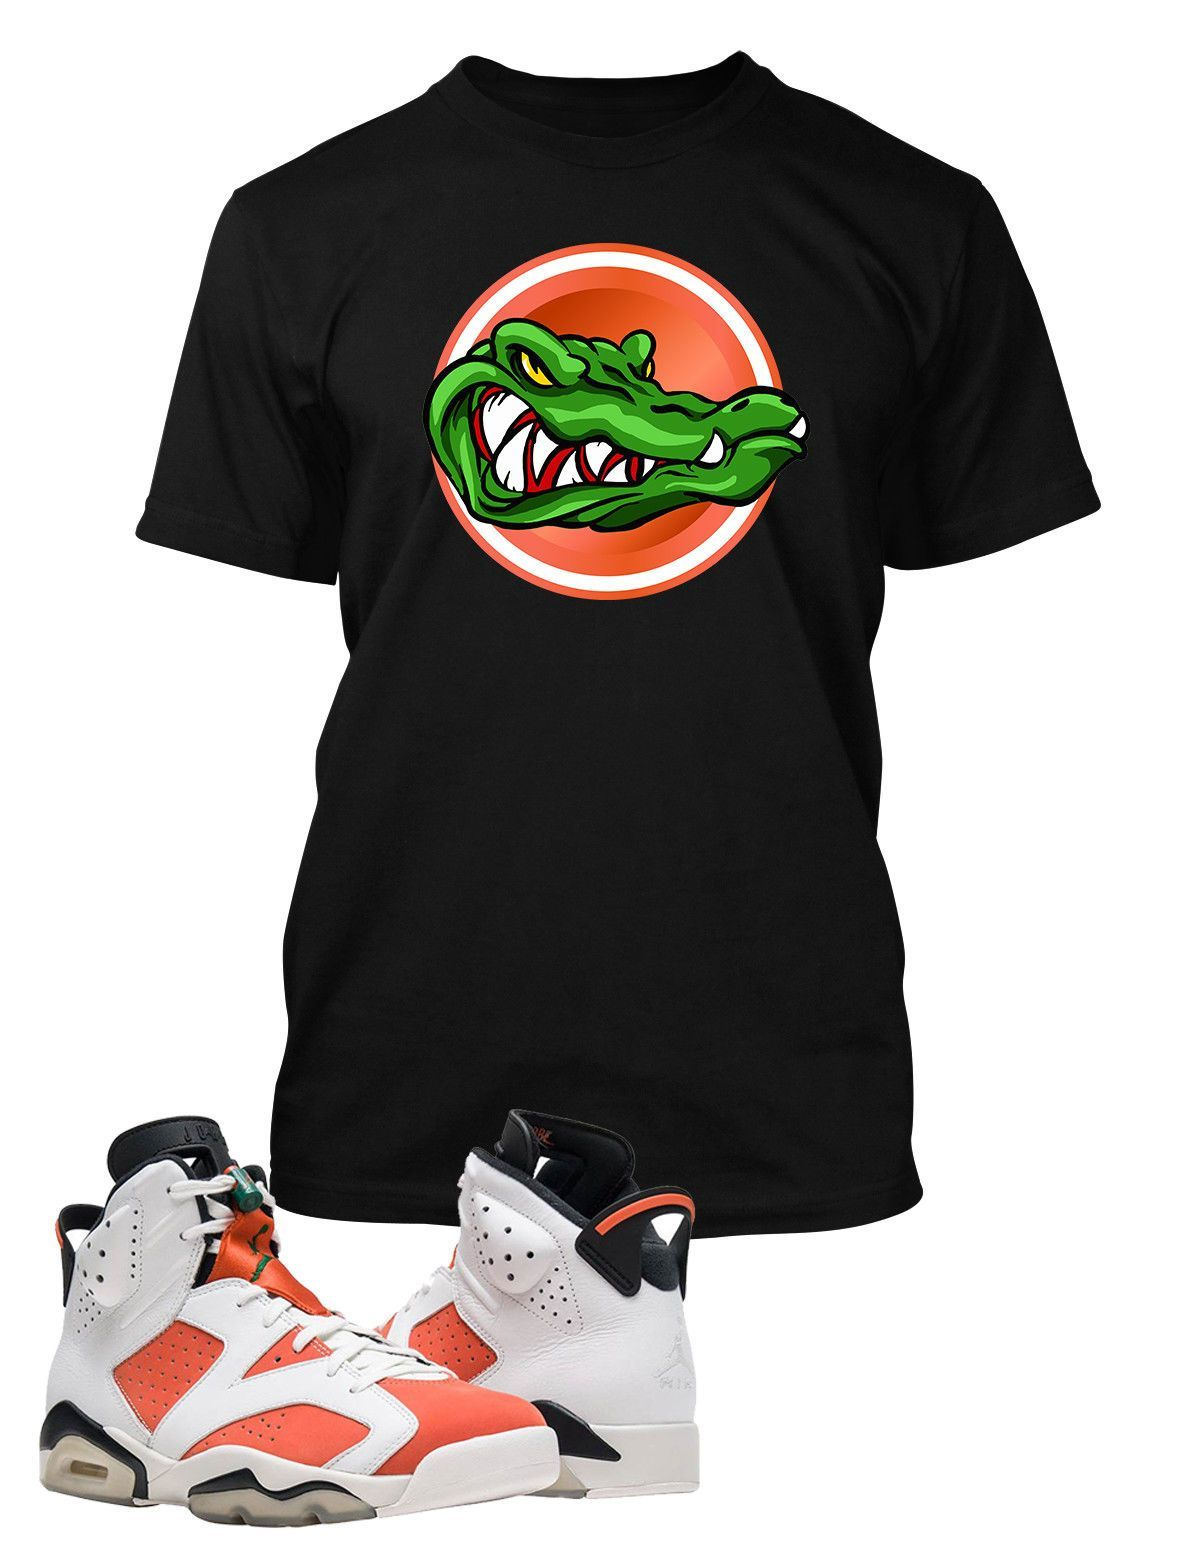 24f91509a38 Gator T Shirt to Match Retro Air Jordan 6 Gatorade Shoe | Kicks ...